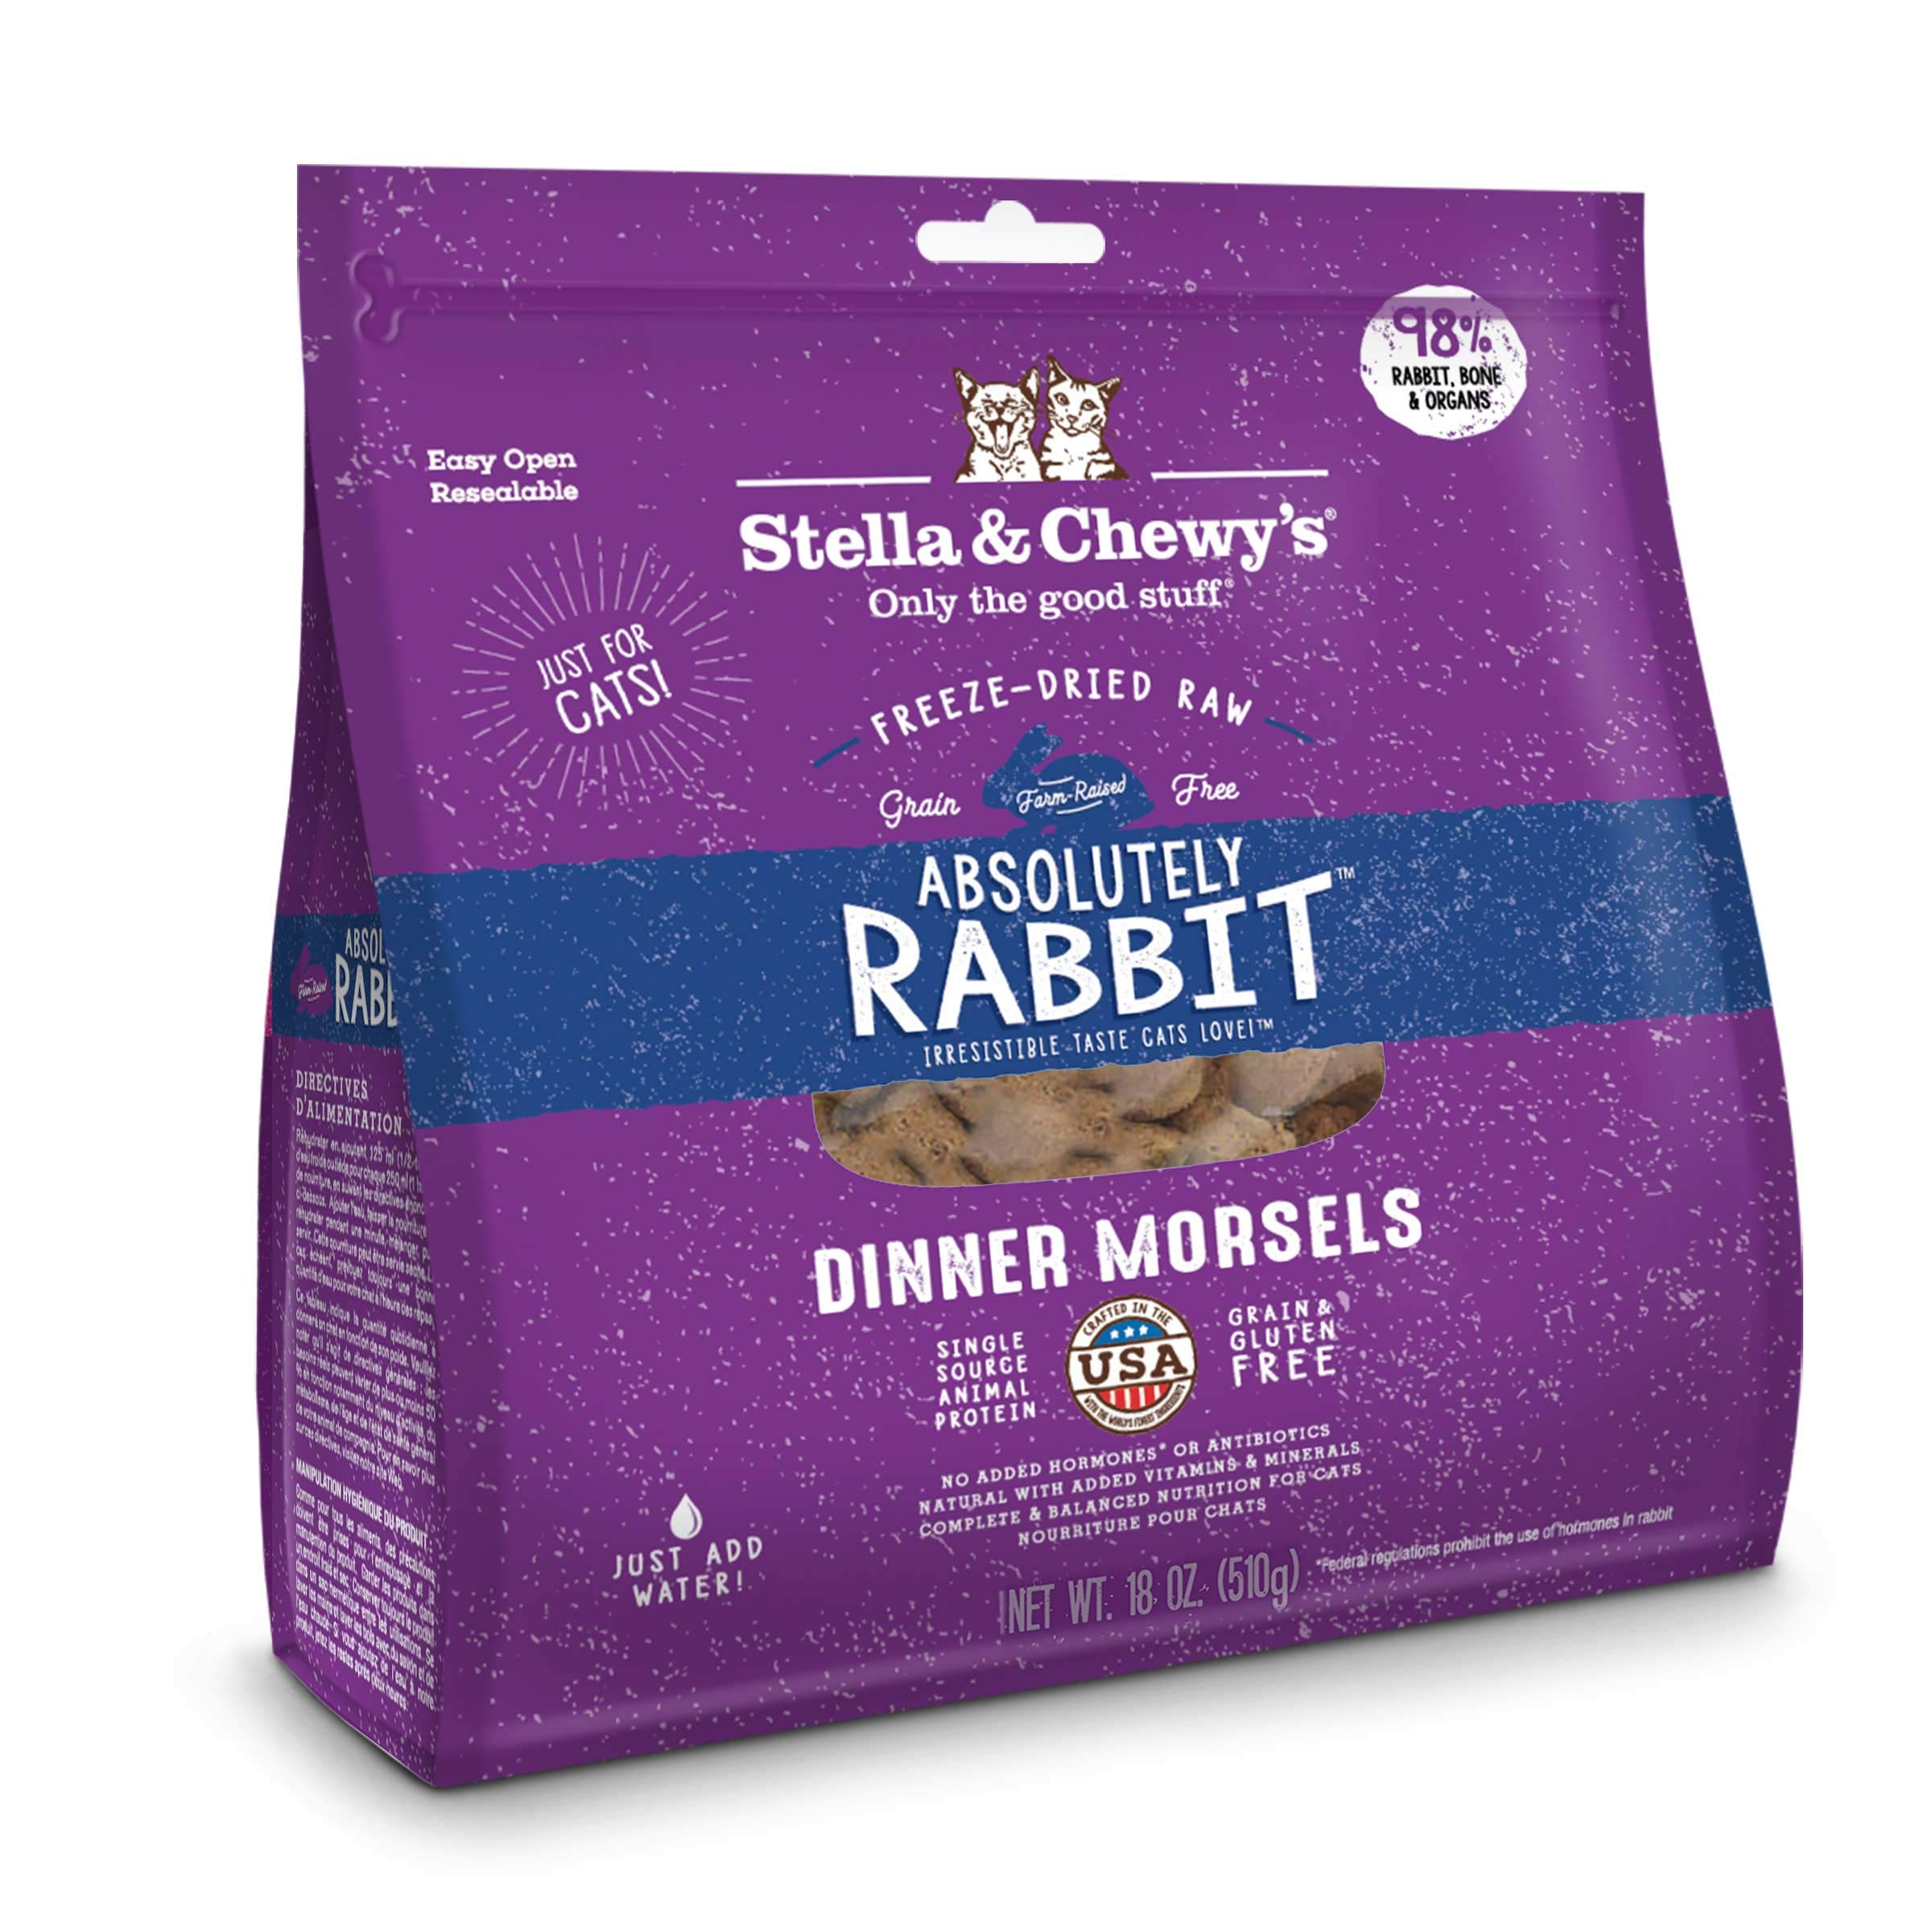 Stella & Chewy's Freeze-Dried Raw Absolutely Rabbit Dinner Morsels Grain-Free Cat Food, 18 oz Bag